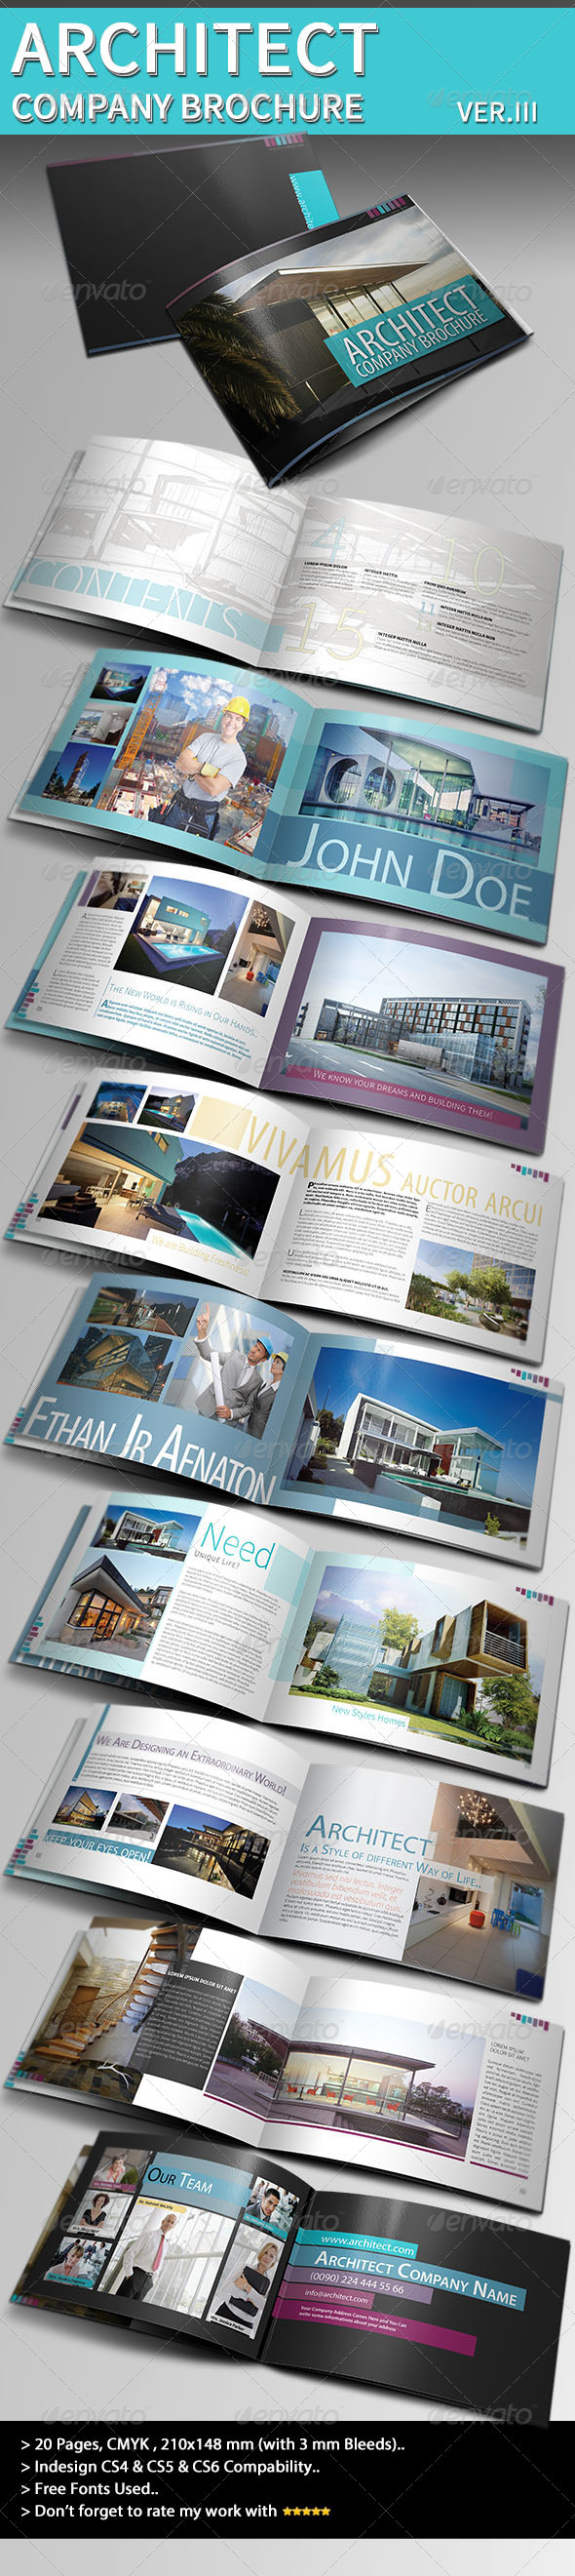 GraphicRiver Architecture Brochure Template Ver.III 3923012